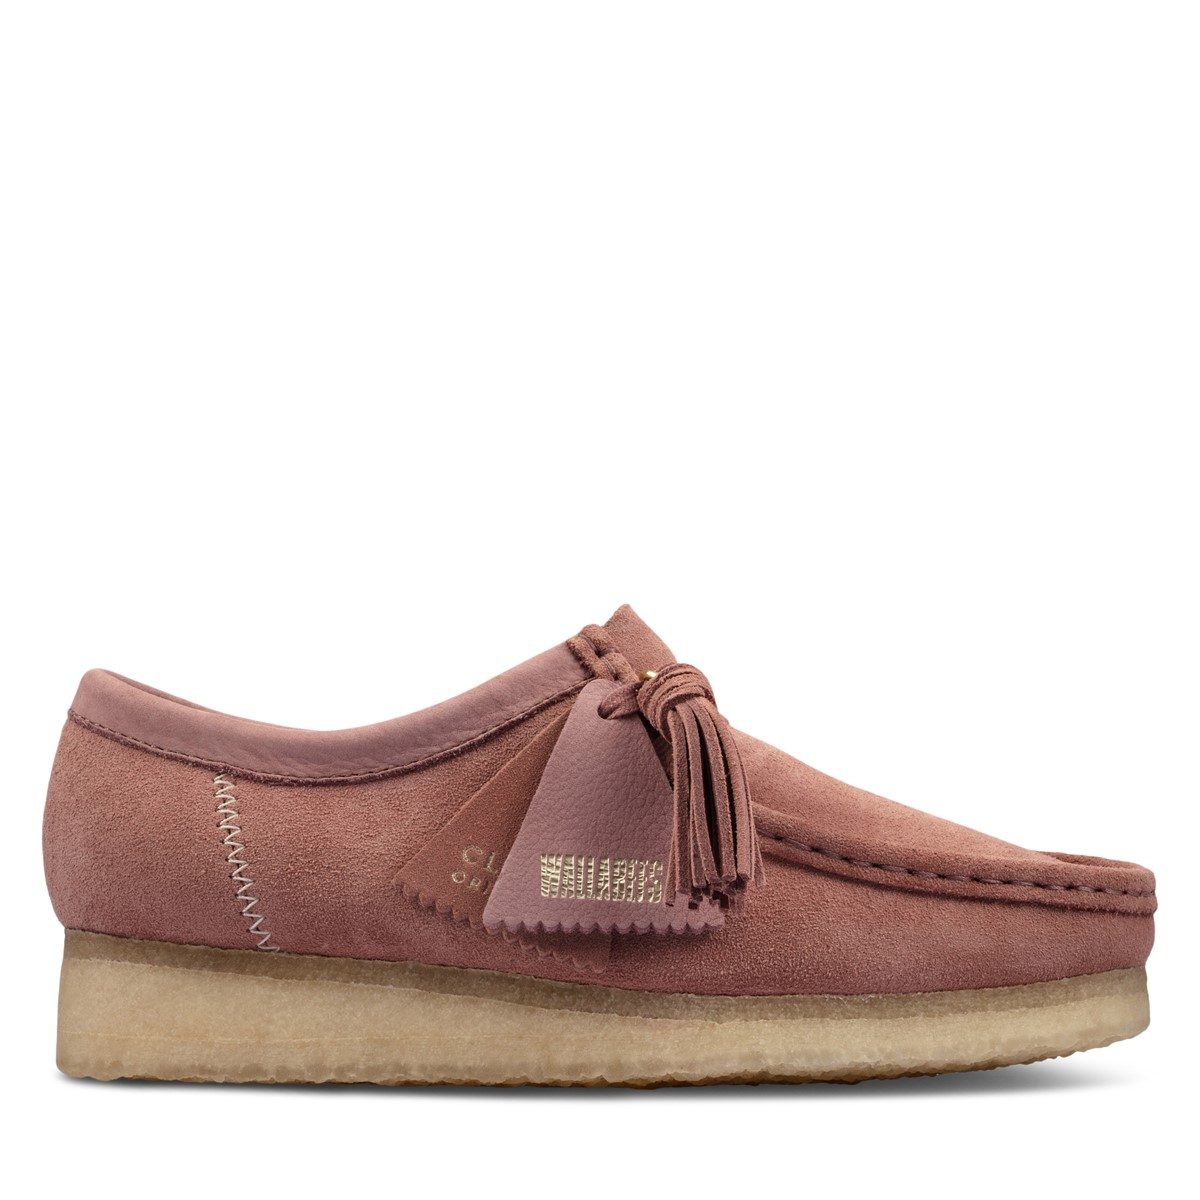 Women's Wallabee Moccasin Shoes in Pink